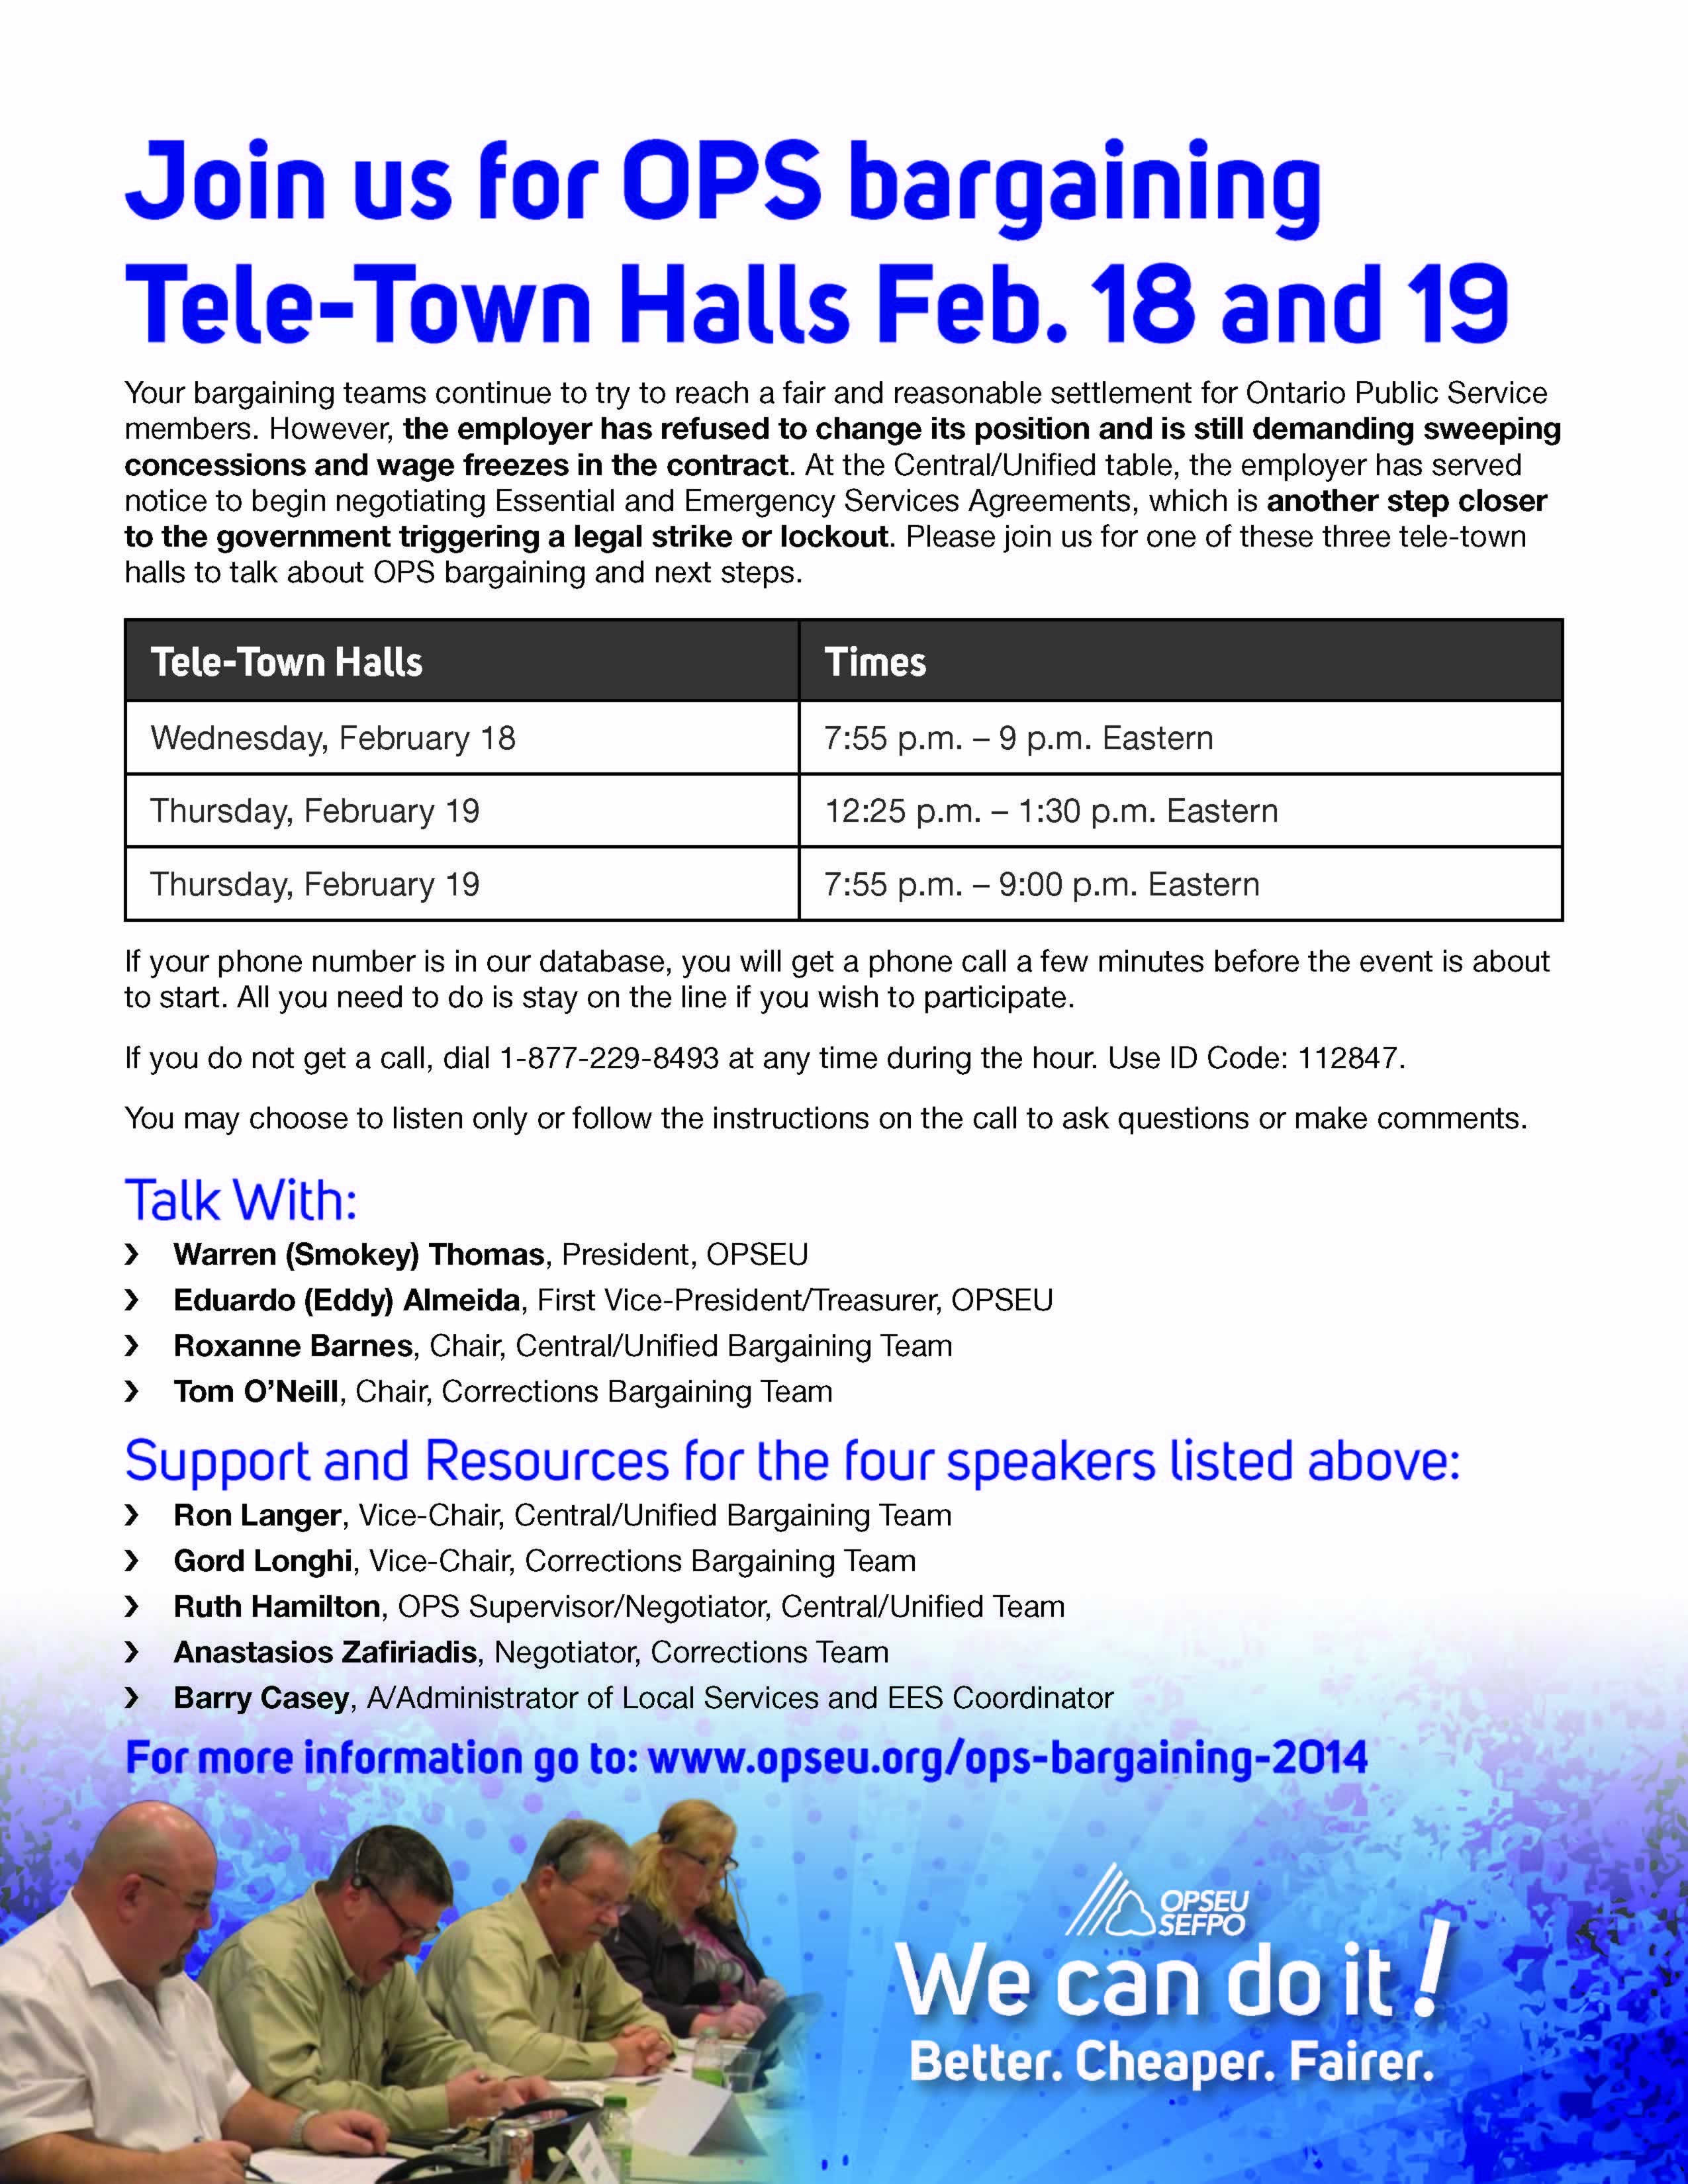 Join us for OPS bargaining tele-town halls feb. 18 & 19.